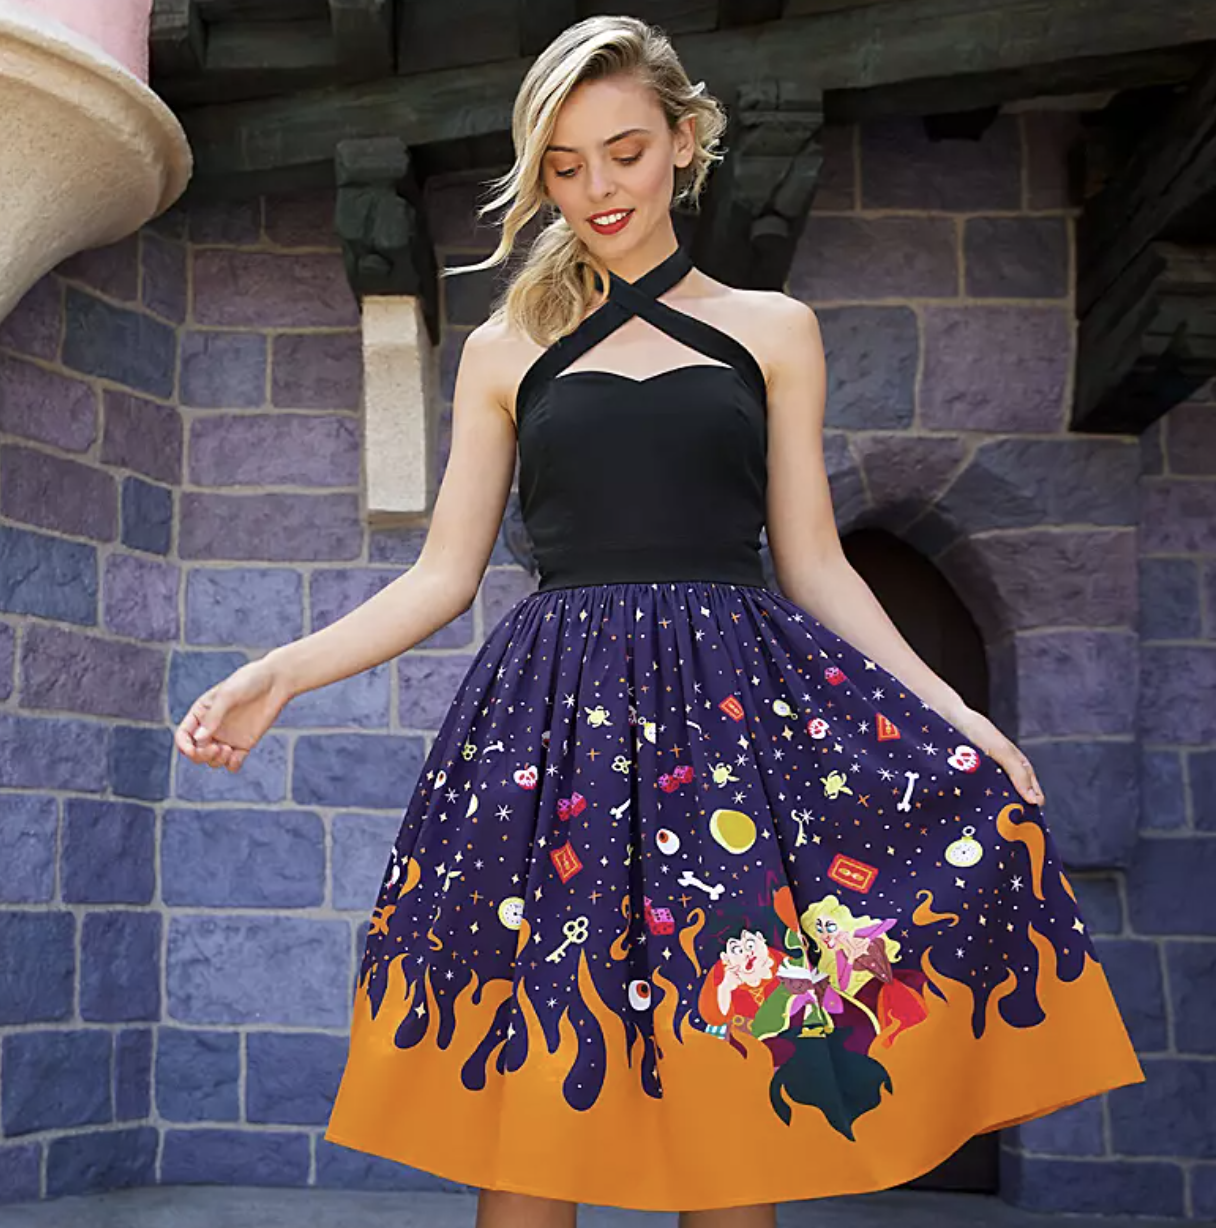 a halter dress that criss-crosses in the front, cuts into a black sweetheart neckline, and has a flowing skirt with a purple base, orange flames licking up from the bottom, and an array of hocus pocus themed icons all over